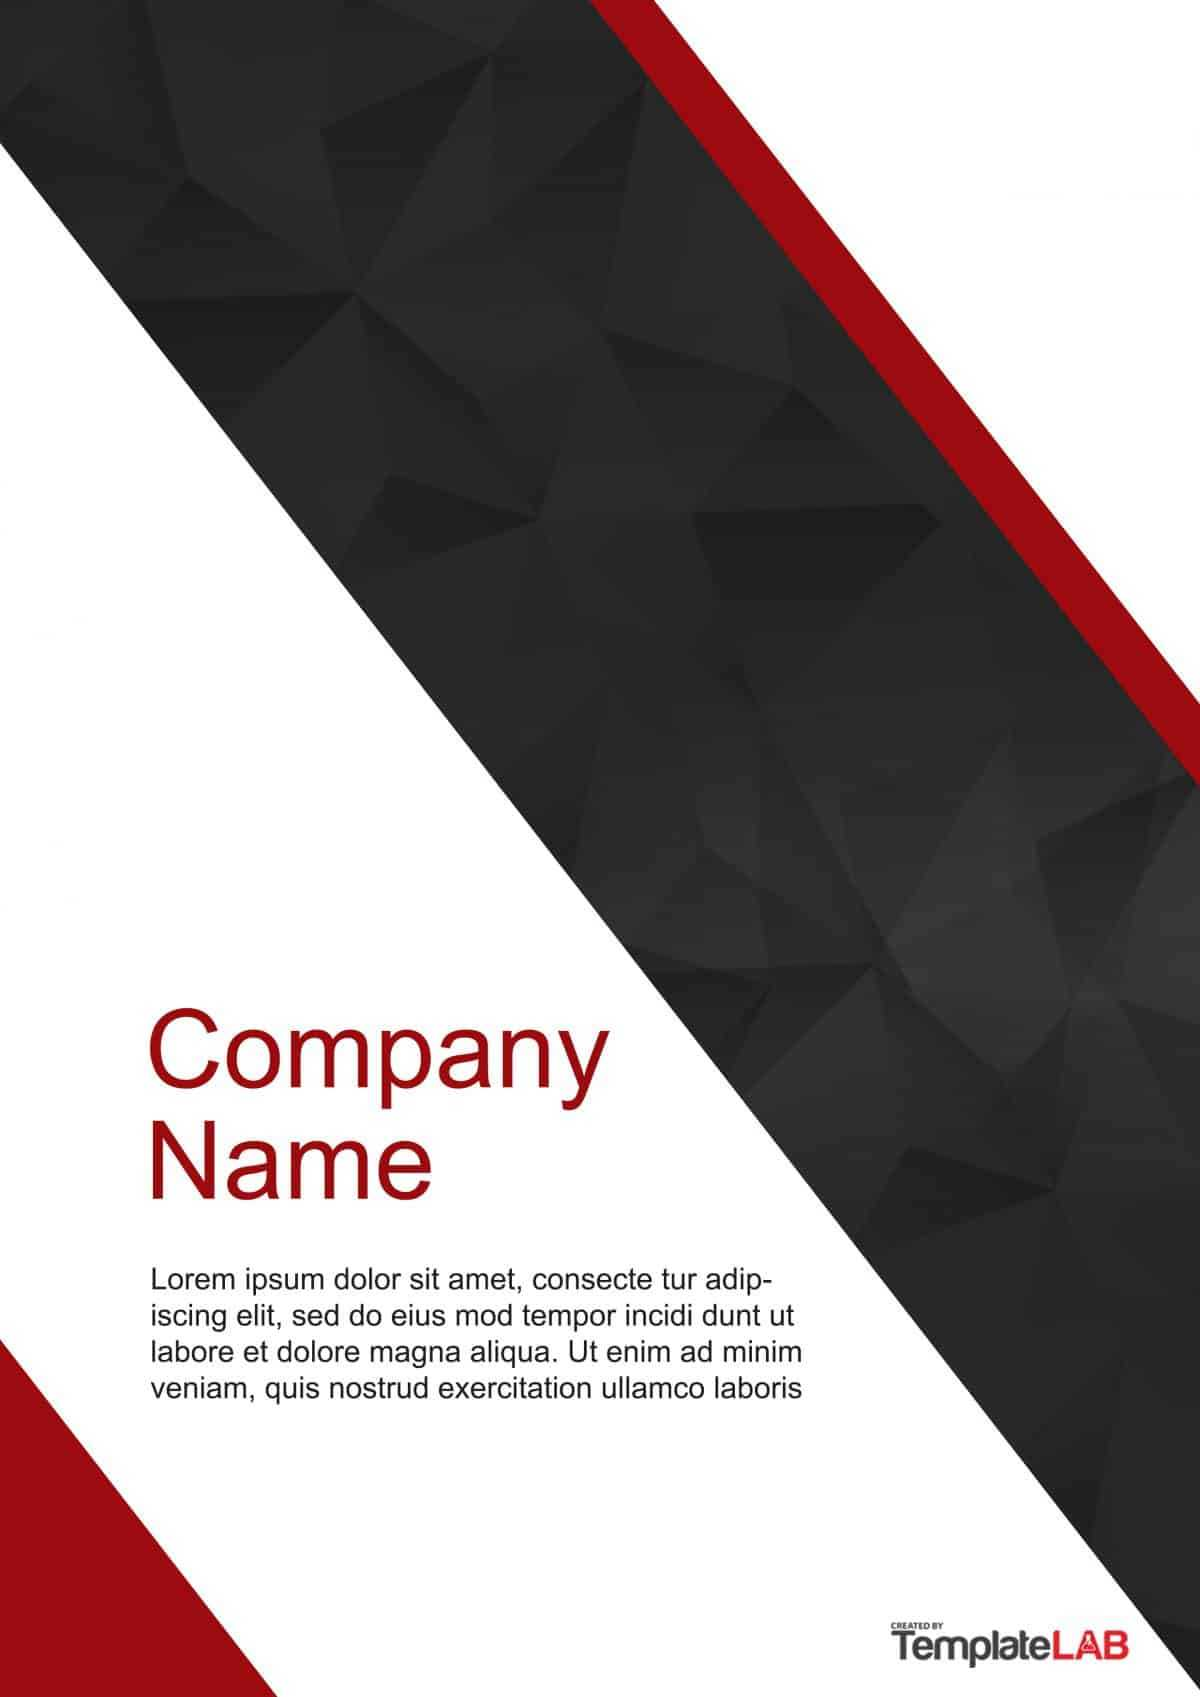 39 Amazing Cover Page Templates (Word + Psd) ᐅ Template Lab Within Microsoft Word Cover Page Templates Download